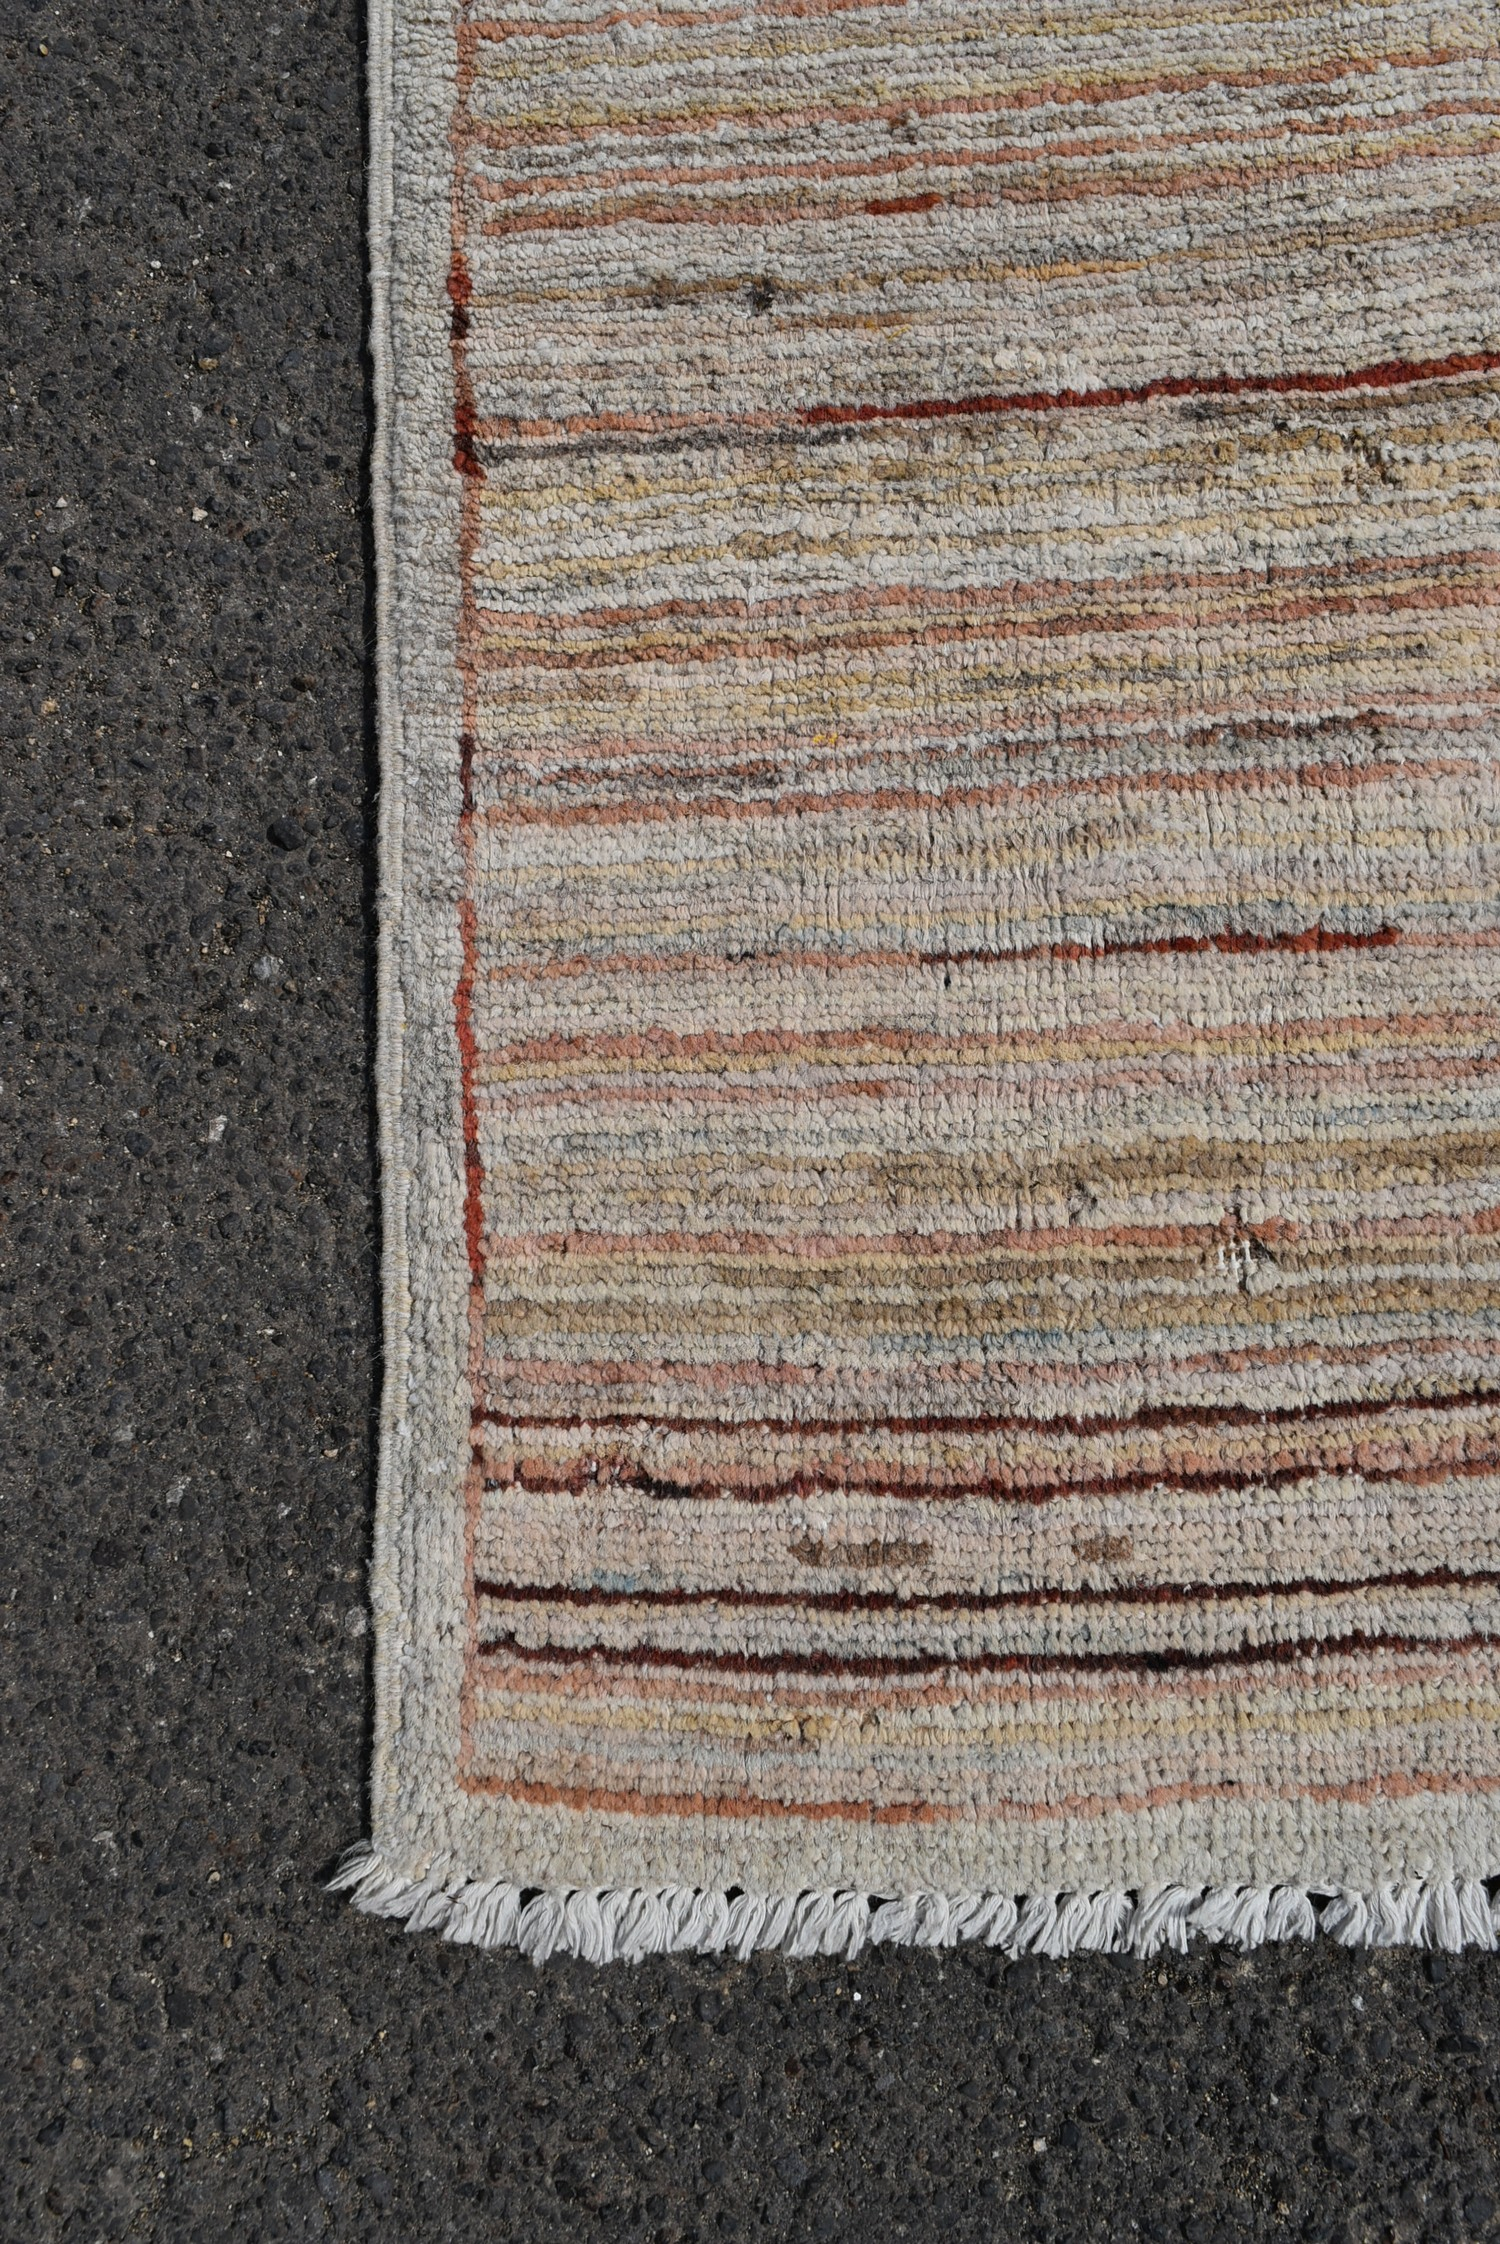 A modern rug with cross weave in hues of red and beige L.140xW.100cm - Image 2 of 3